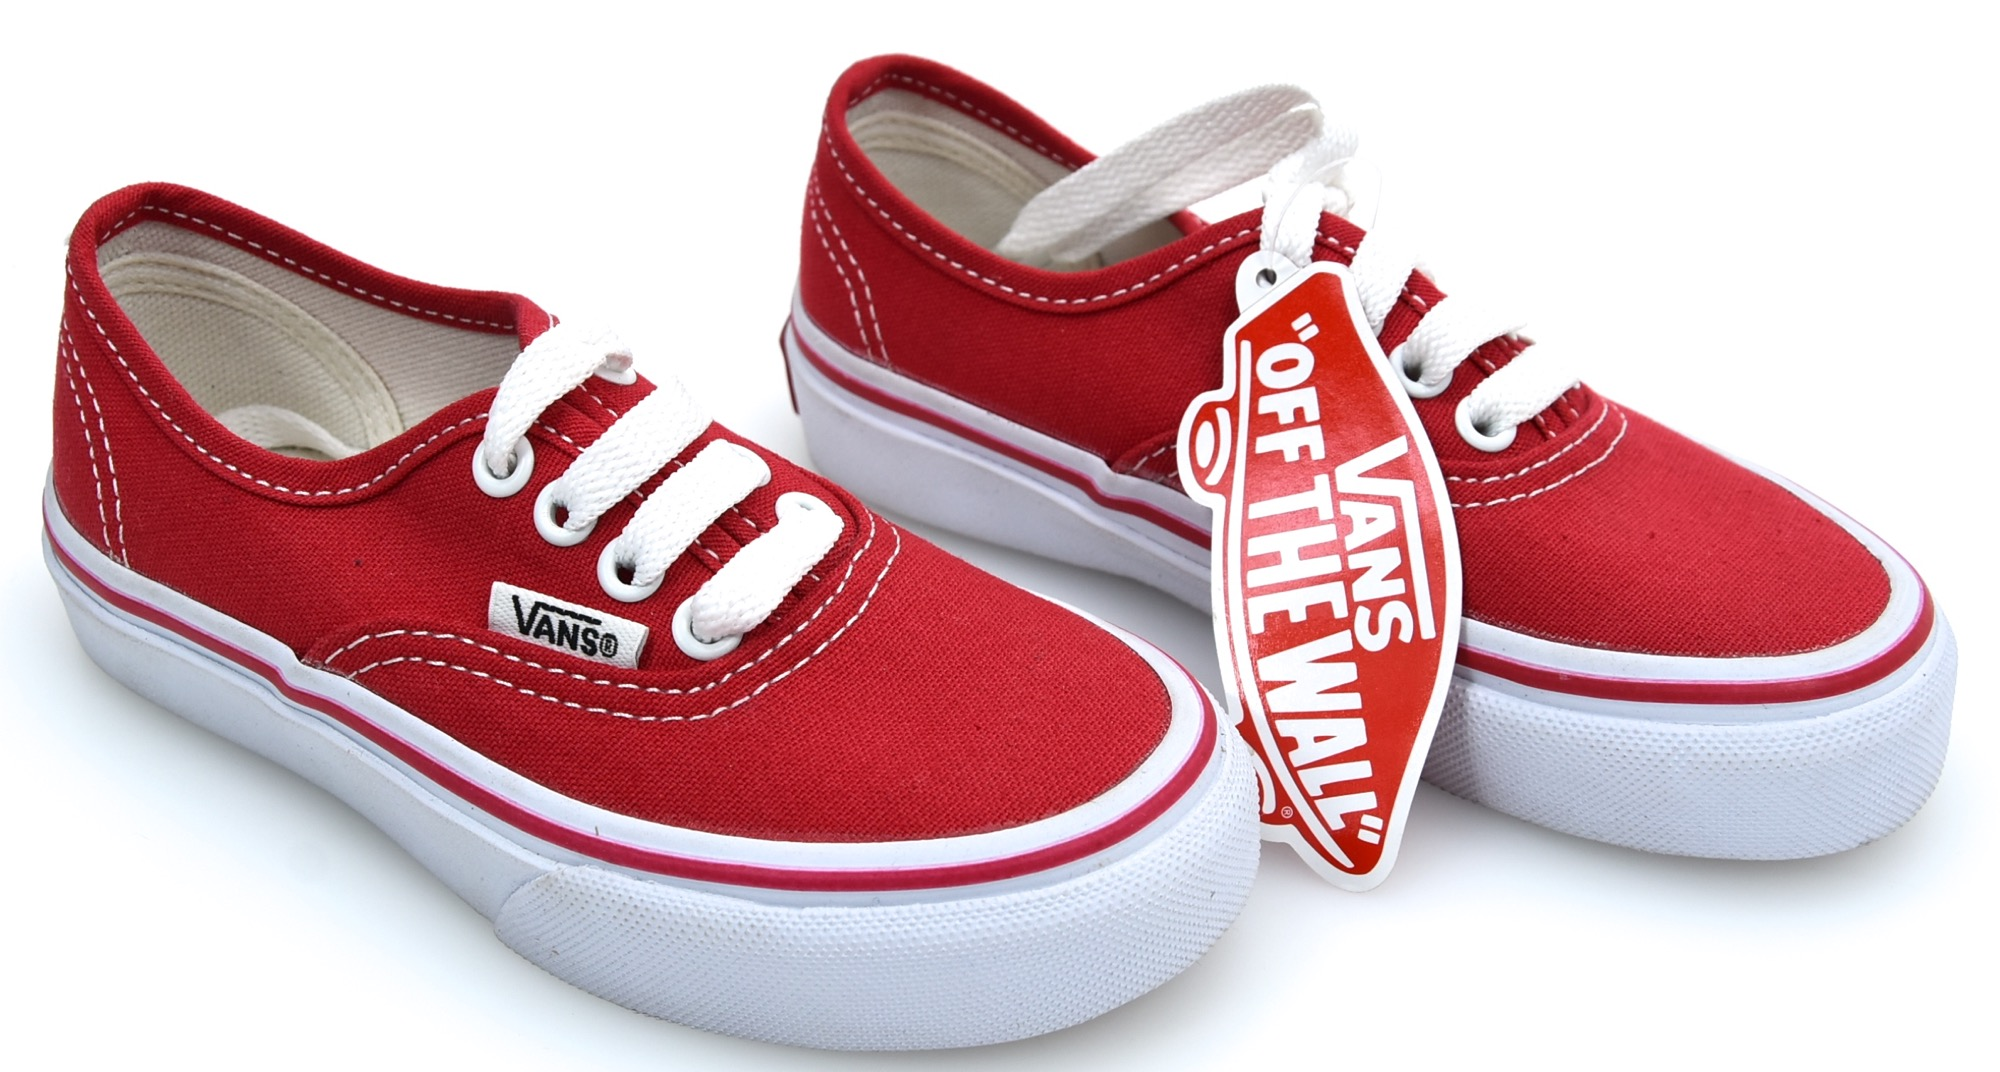 VANS JUNIOR BOY GIRL SNEAKER SHOES CASUAL FREE TIME AUTHENTIC WWXNWD -  WWX6RT 0e974c54aaf